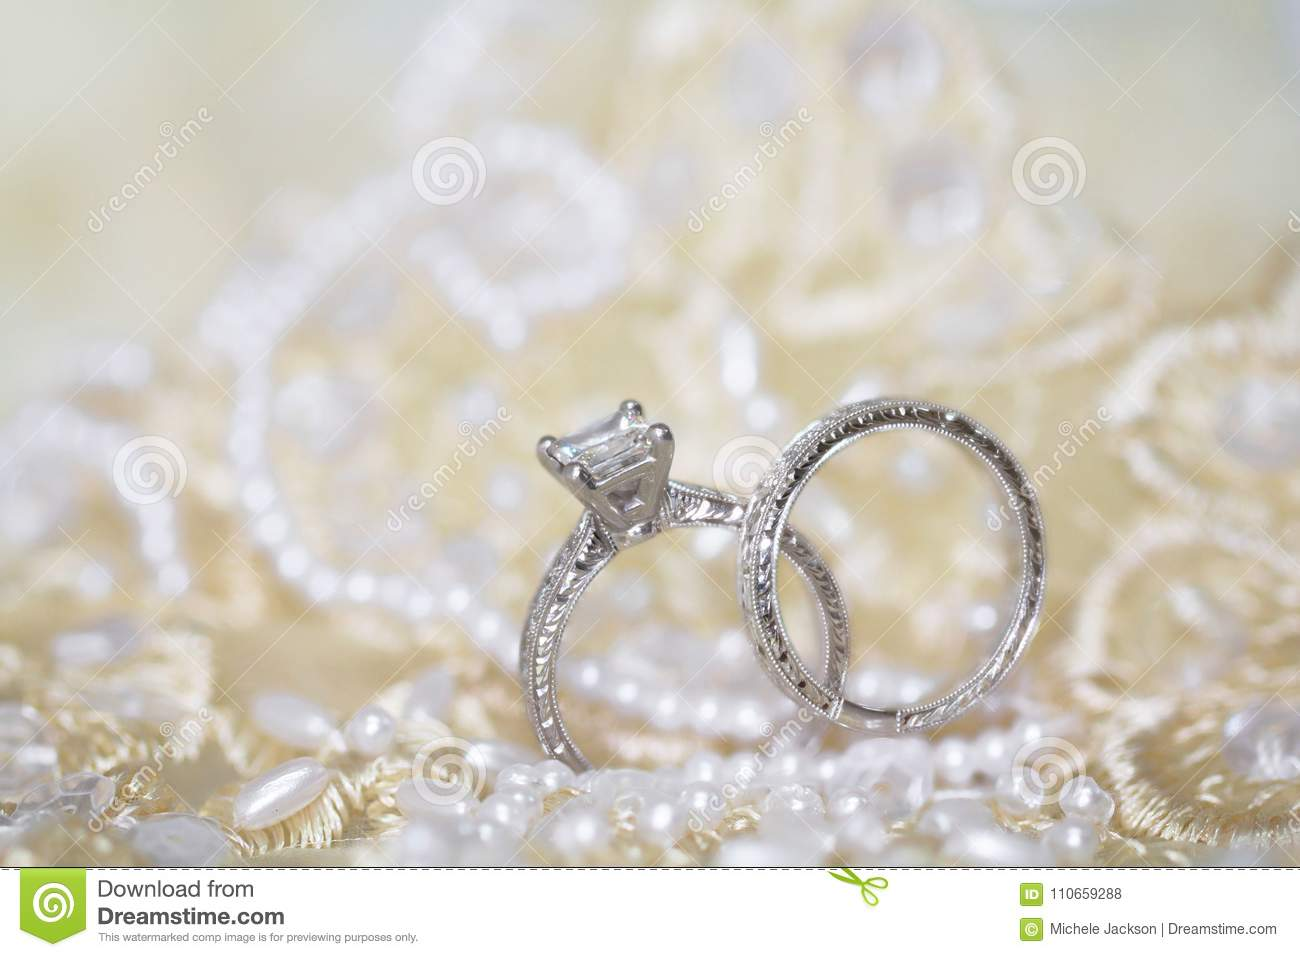 diamond the brilliant custom rings because n wedding edit instagram com s delicate stunning ring pin with for and halo engagement g r p dream pinterest band i bigger beautiful actual a my just